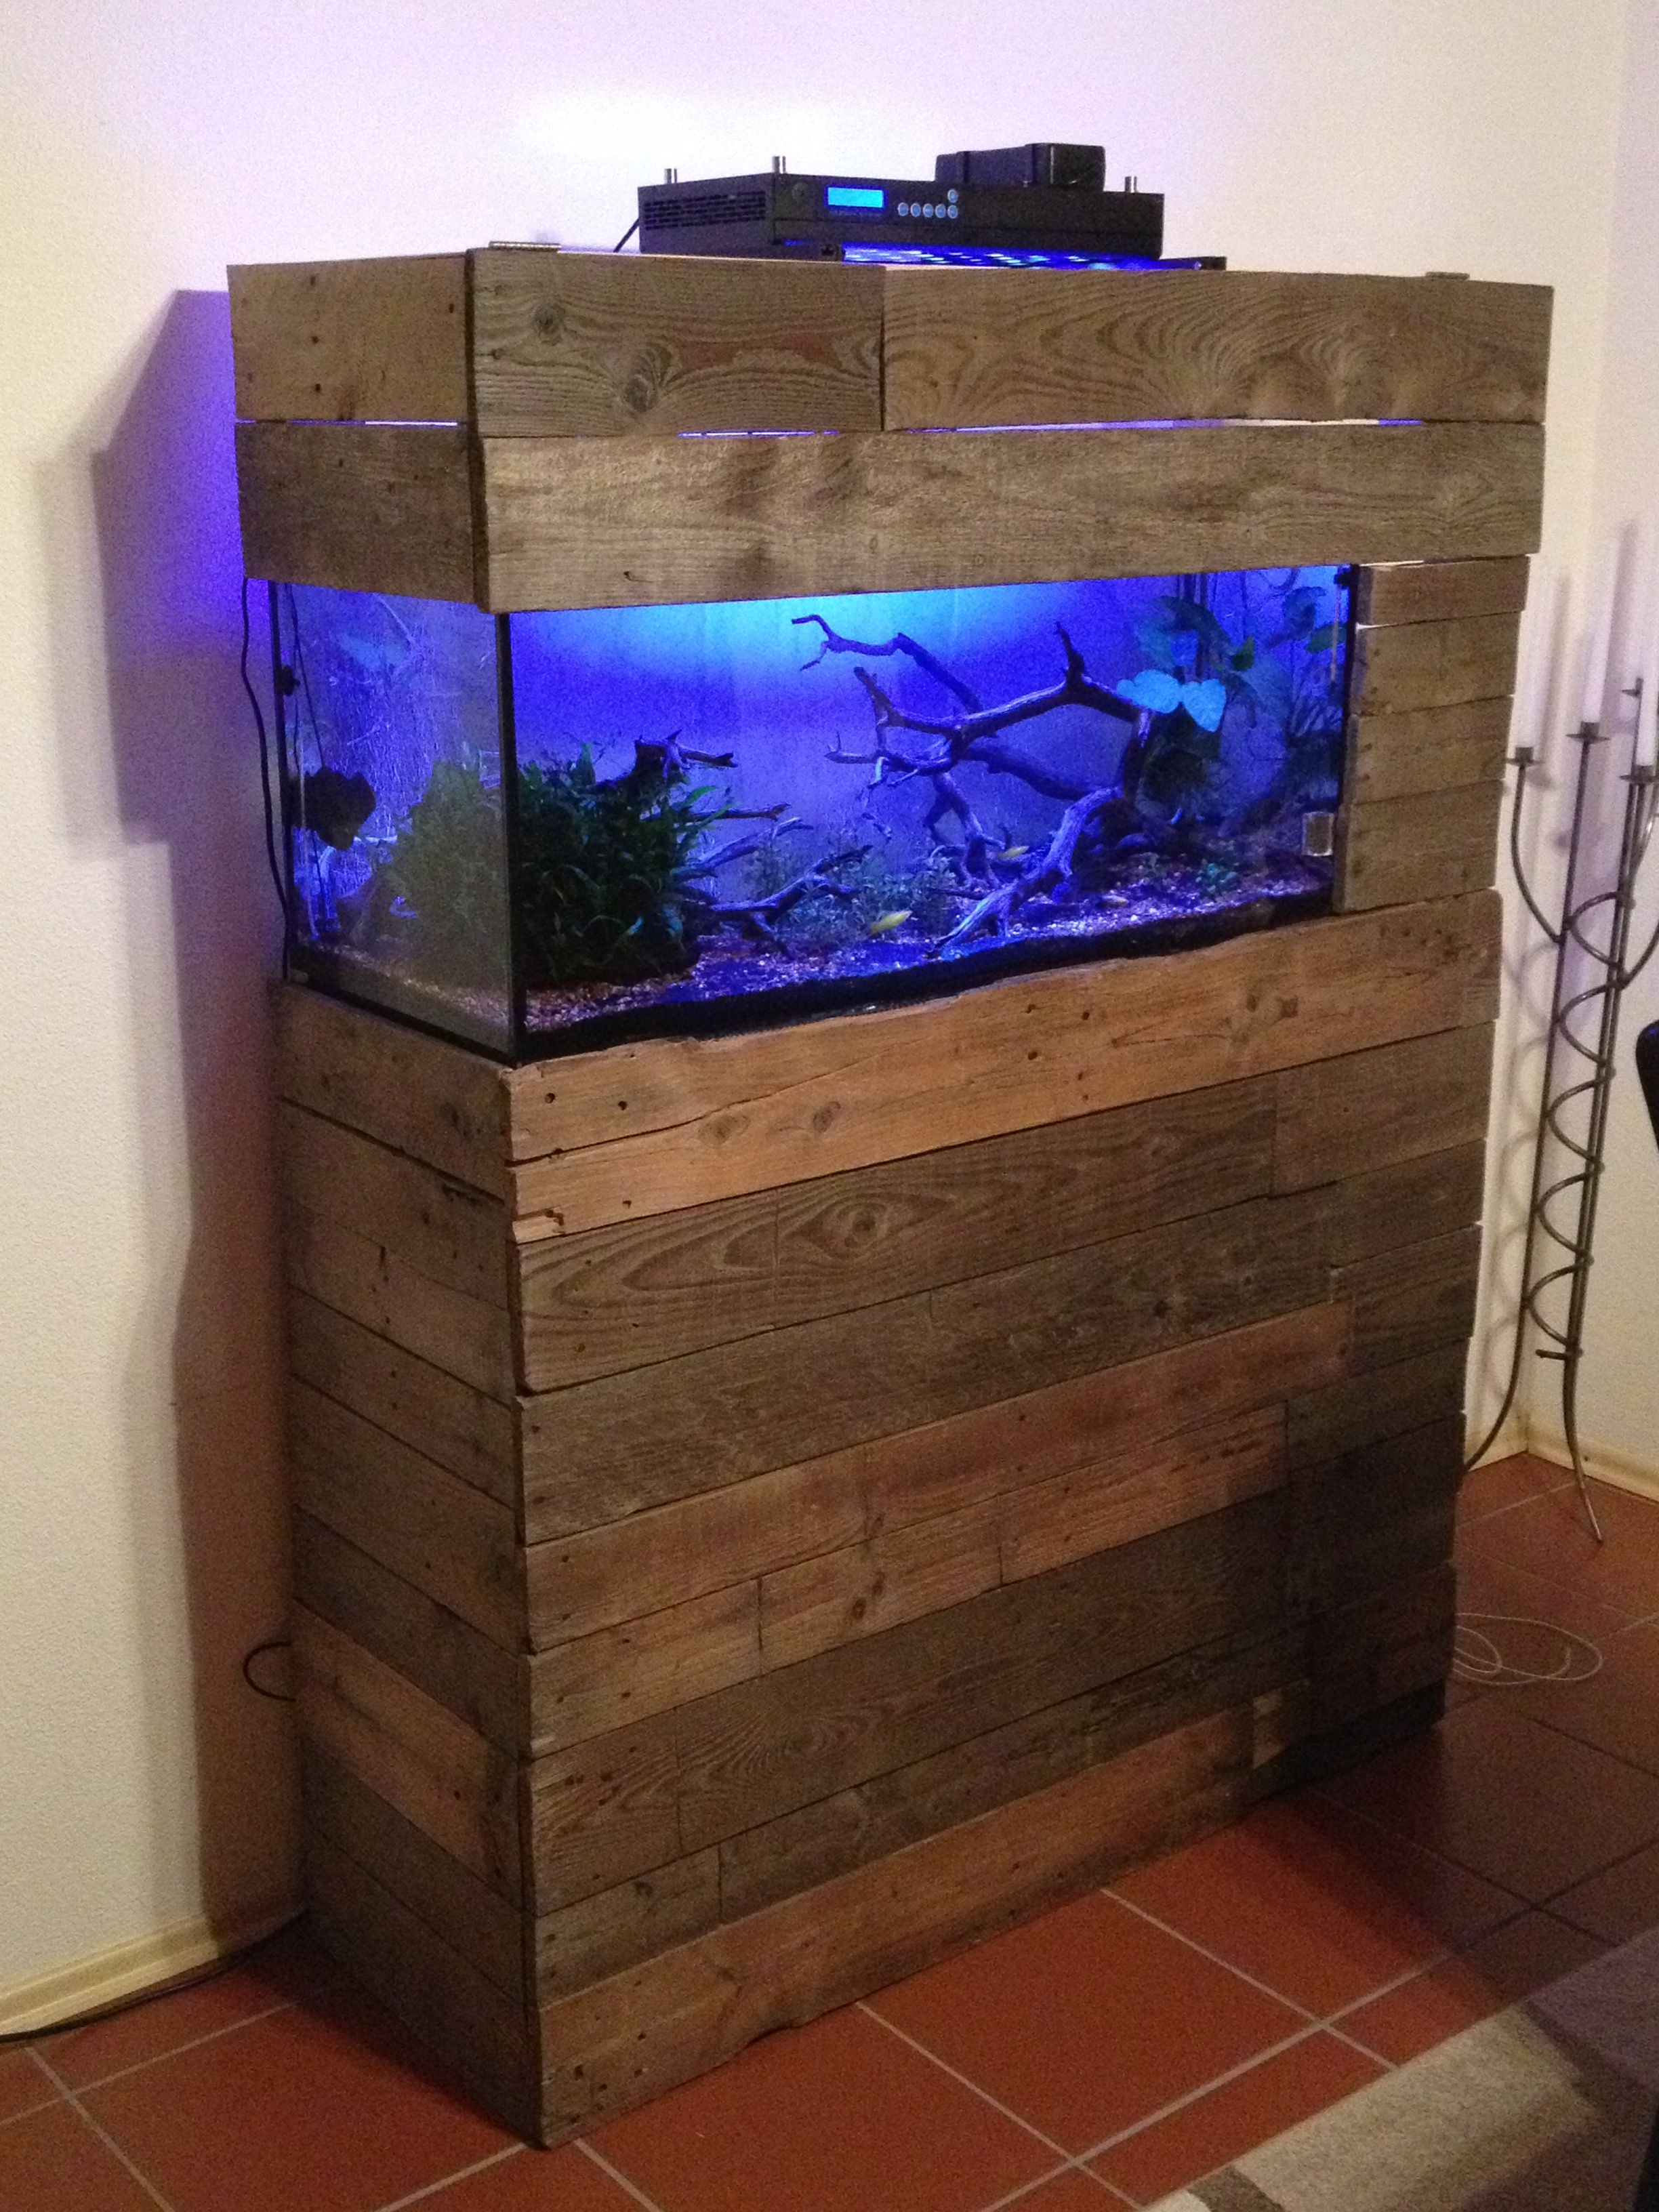 Cool Fish Tanks On Stands 18 Photos Of The Adding Cool